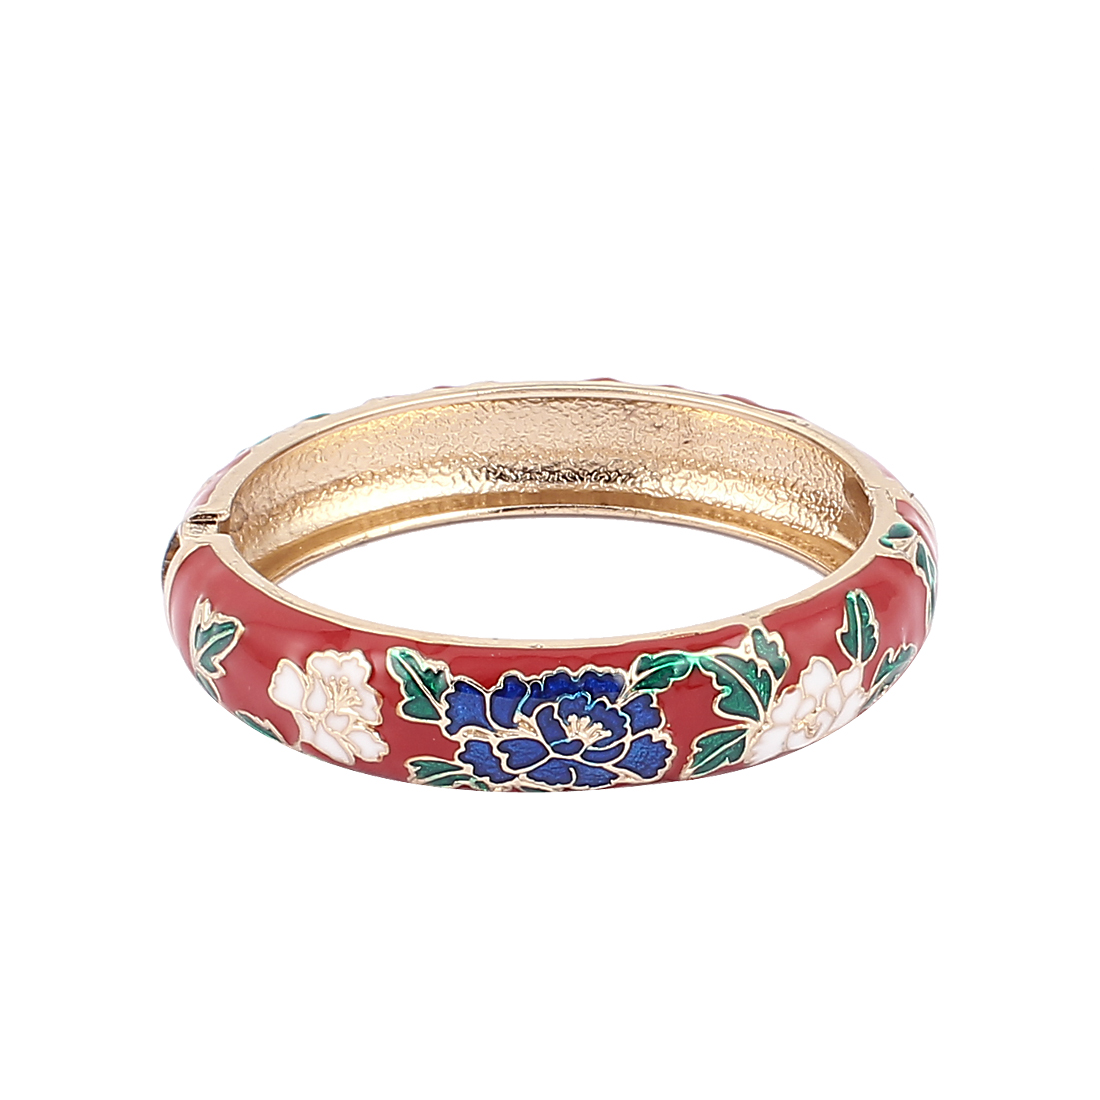 Woman Spring Hinged Round Cuff Flower Pattern Enamel Bracelet Bangle Wristband Red